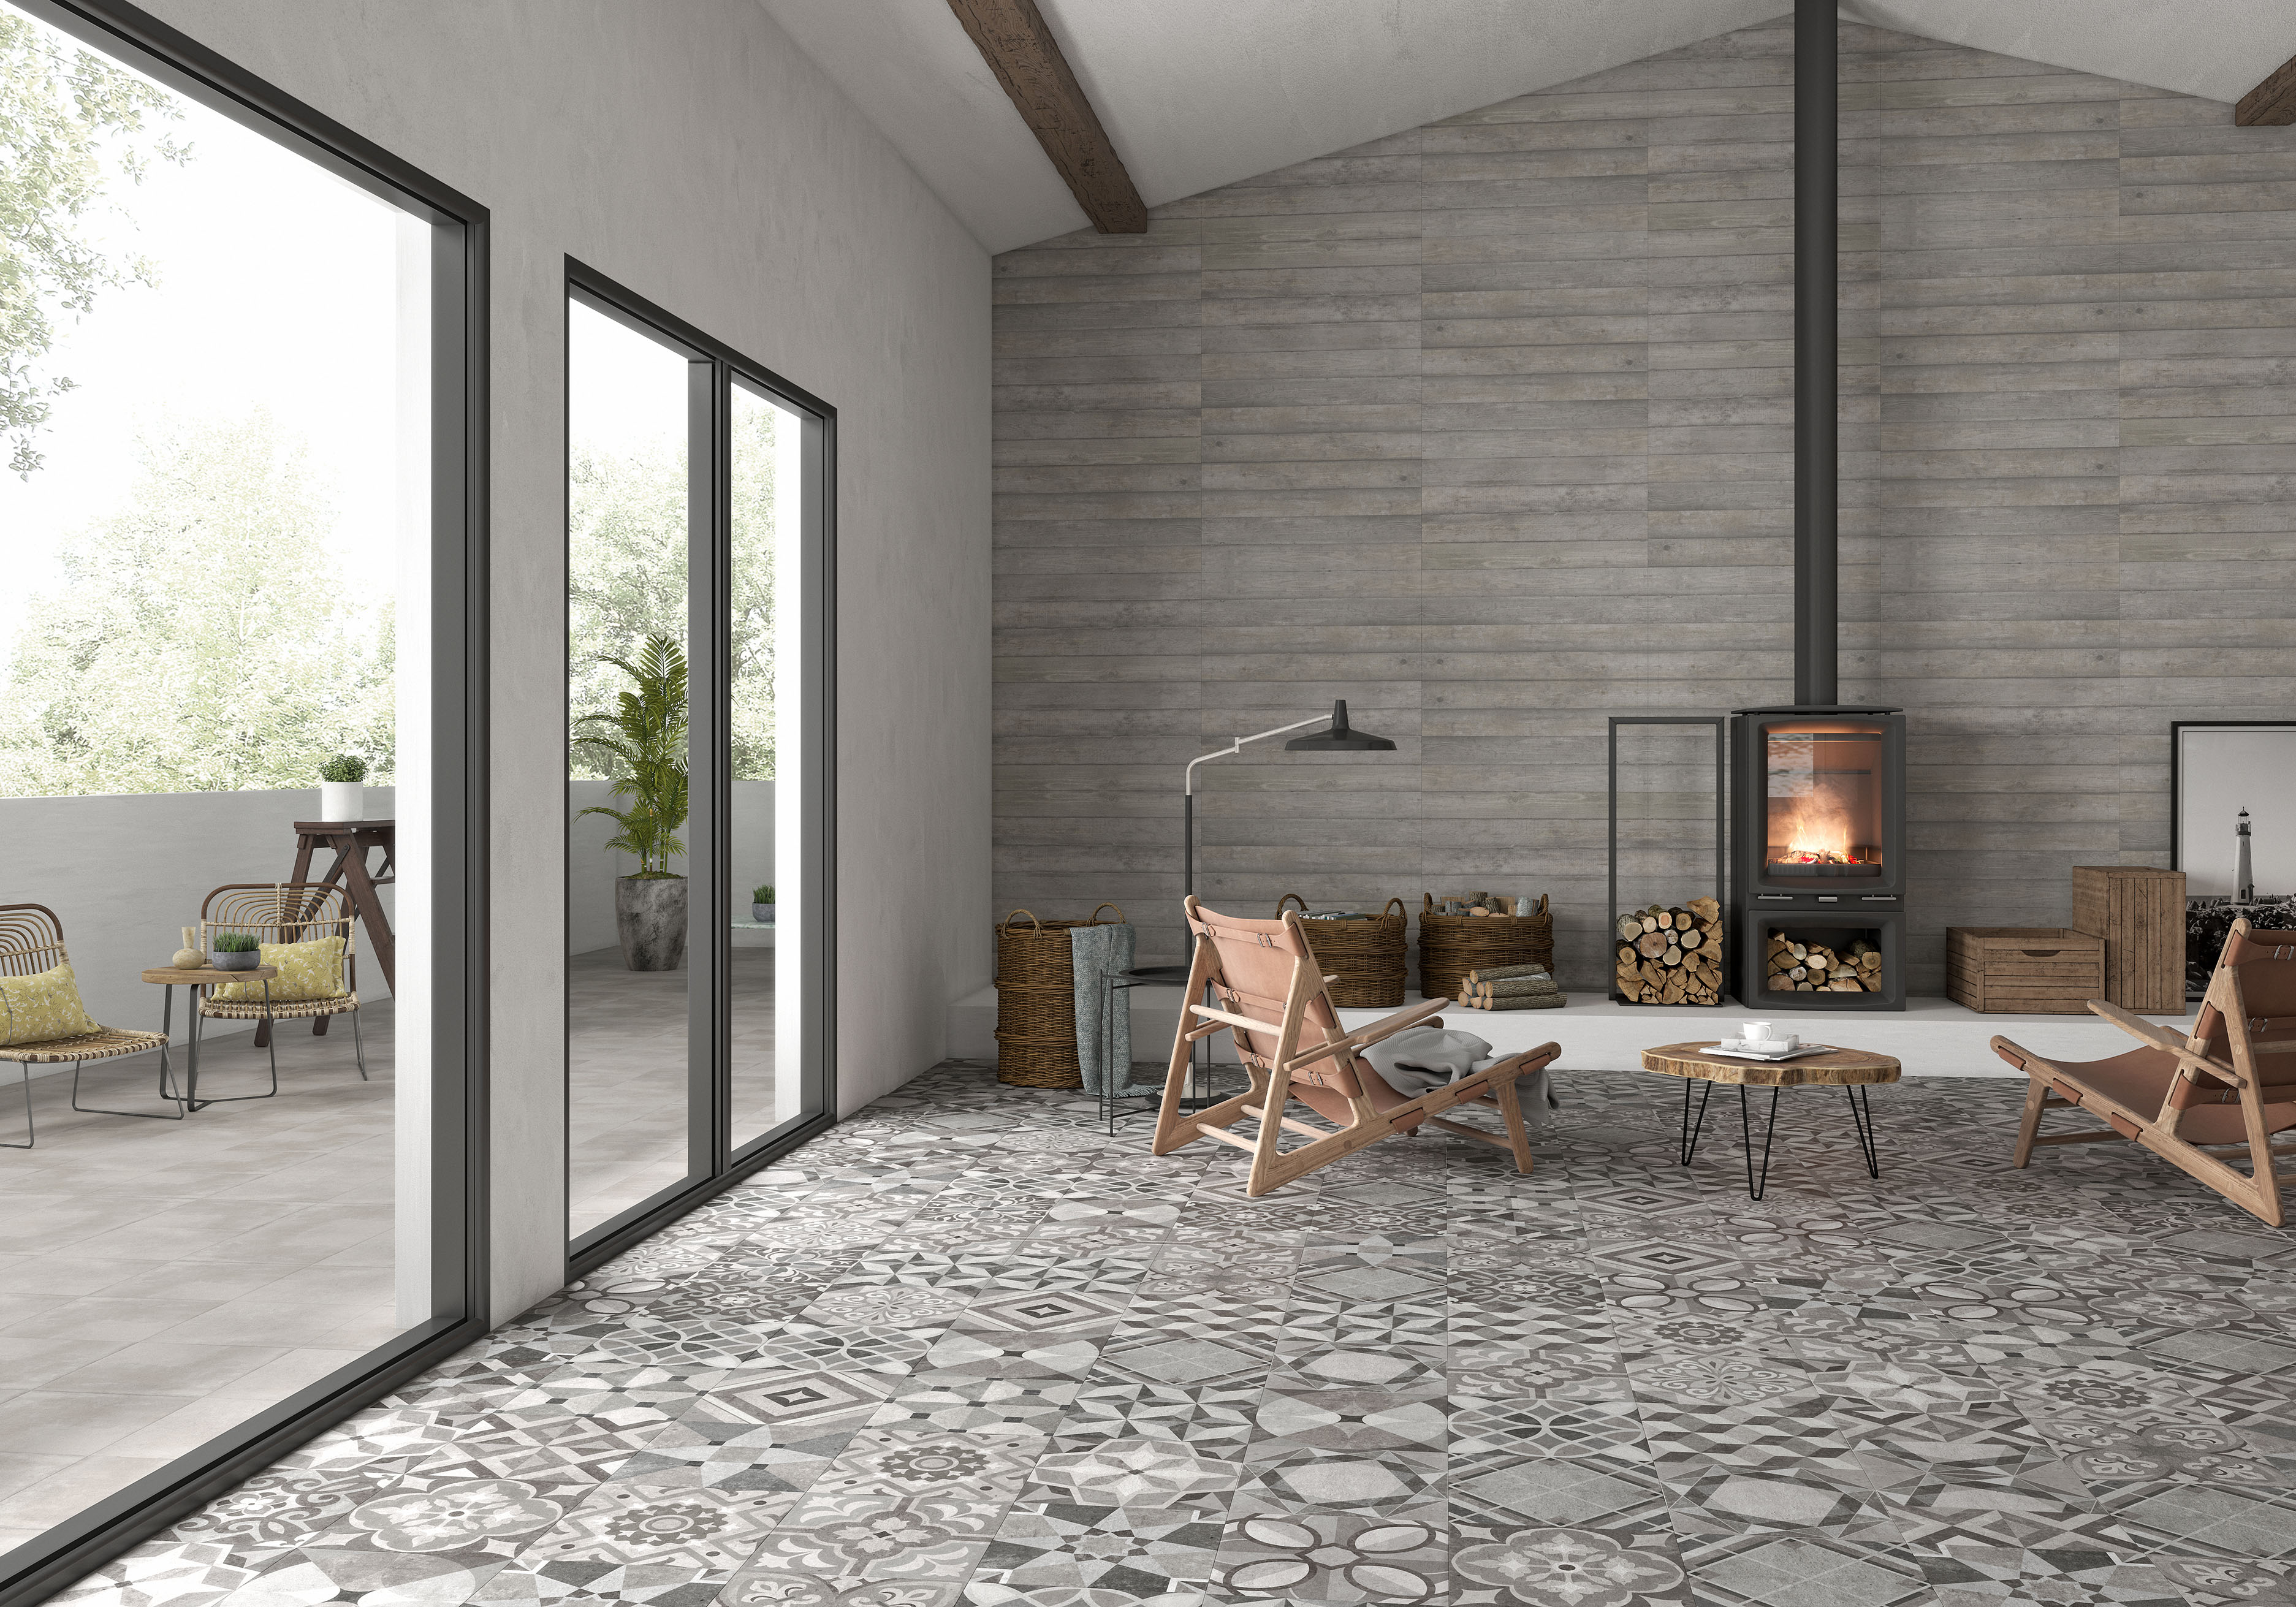 Ceracasa Tile Of Spain Companies Gear Up For Cevisama 2018